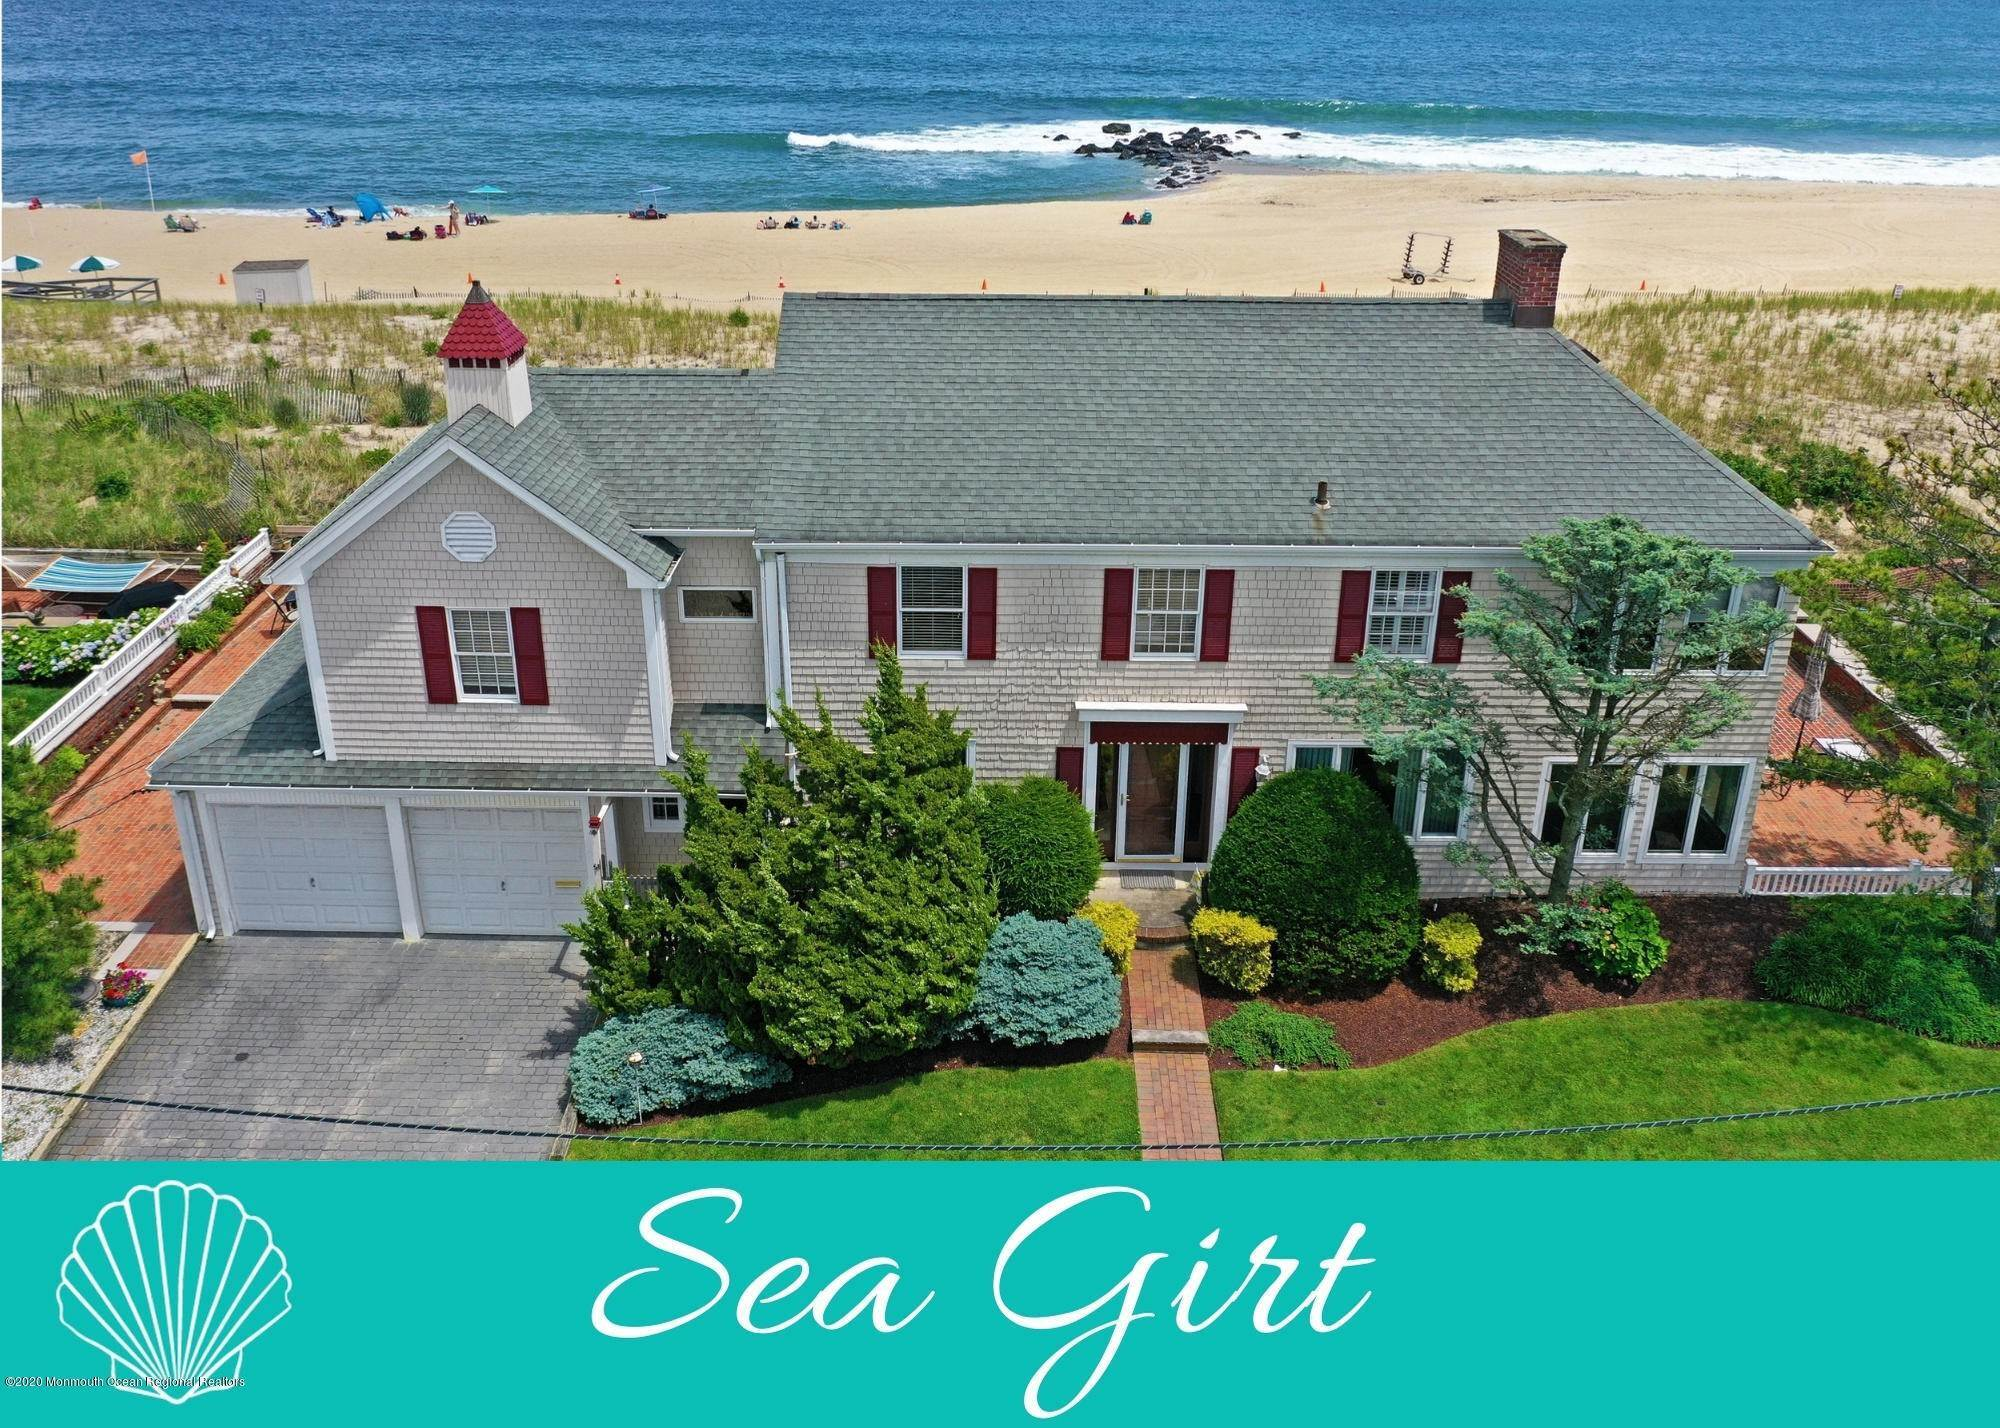 Single Family Home for Sale at 1003 Ocean Avenue Sea Girt, New Jersey, 08750 United States